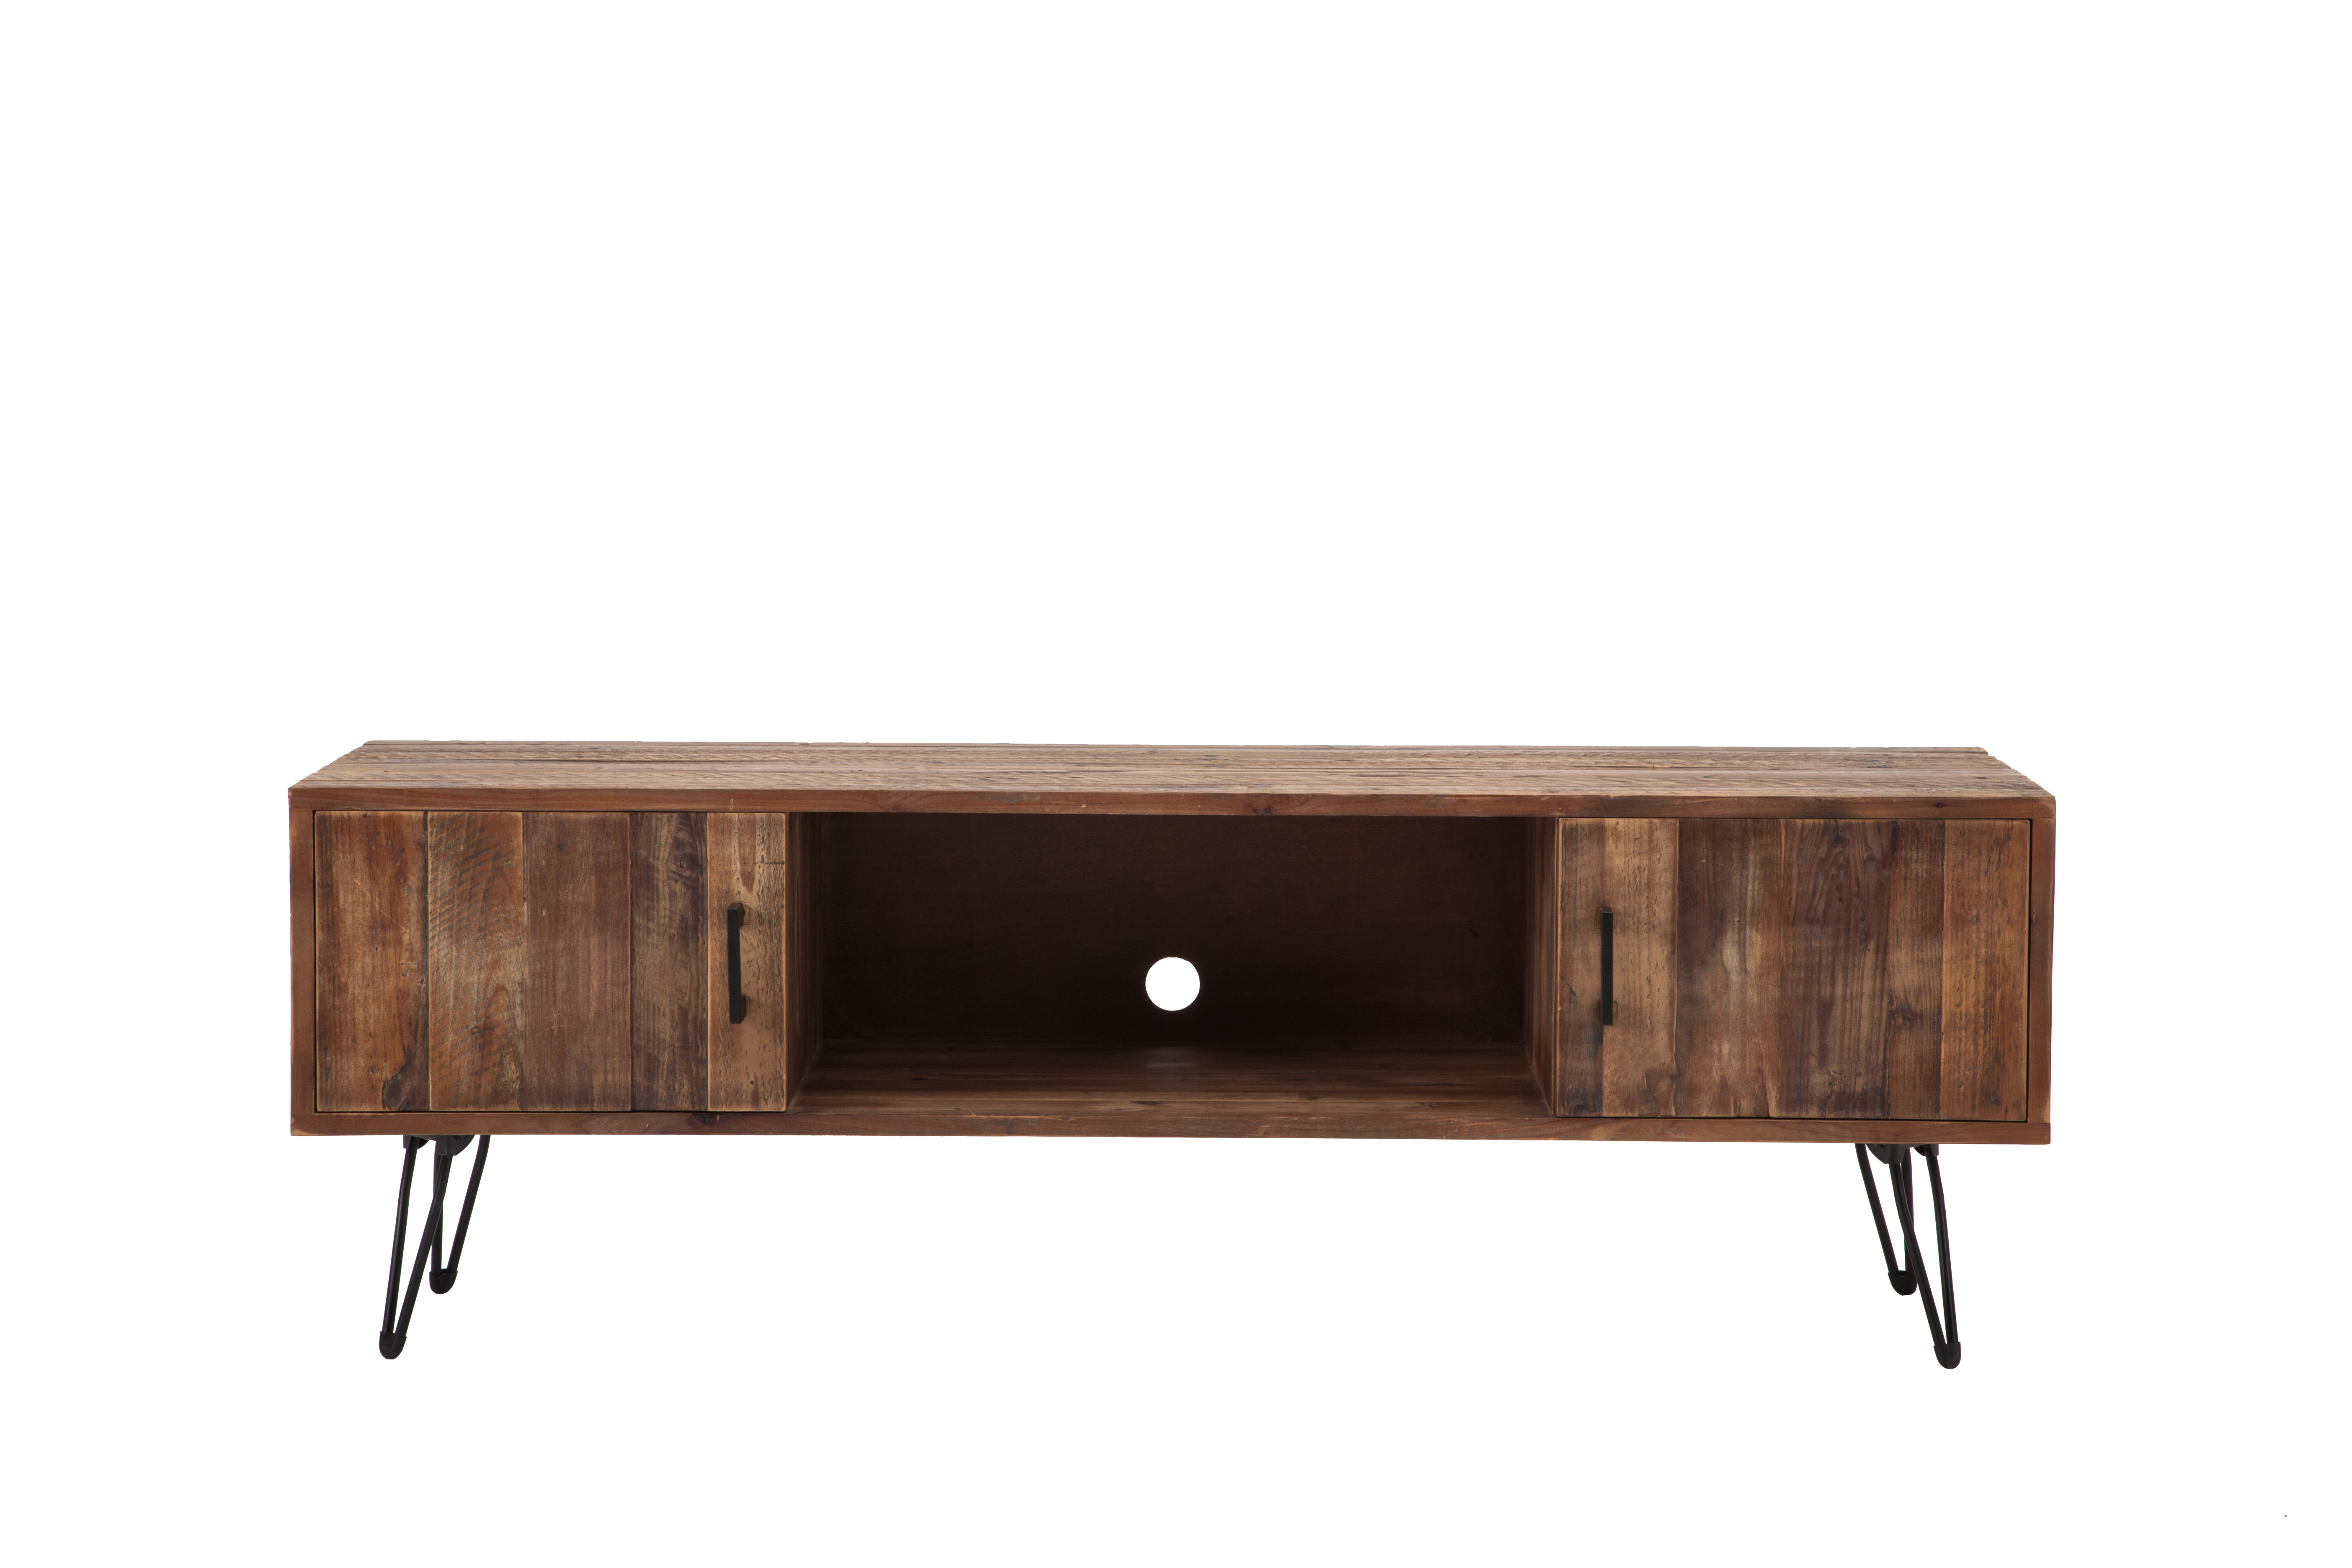 Industrial Tv Stands | Joss & Main Throughout Walton 74 Inch Open Tv Stands (View 18 of 20)